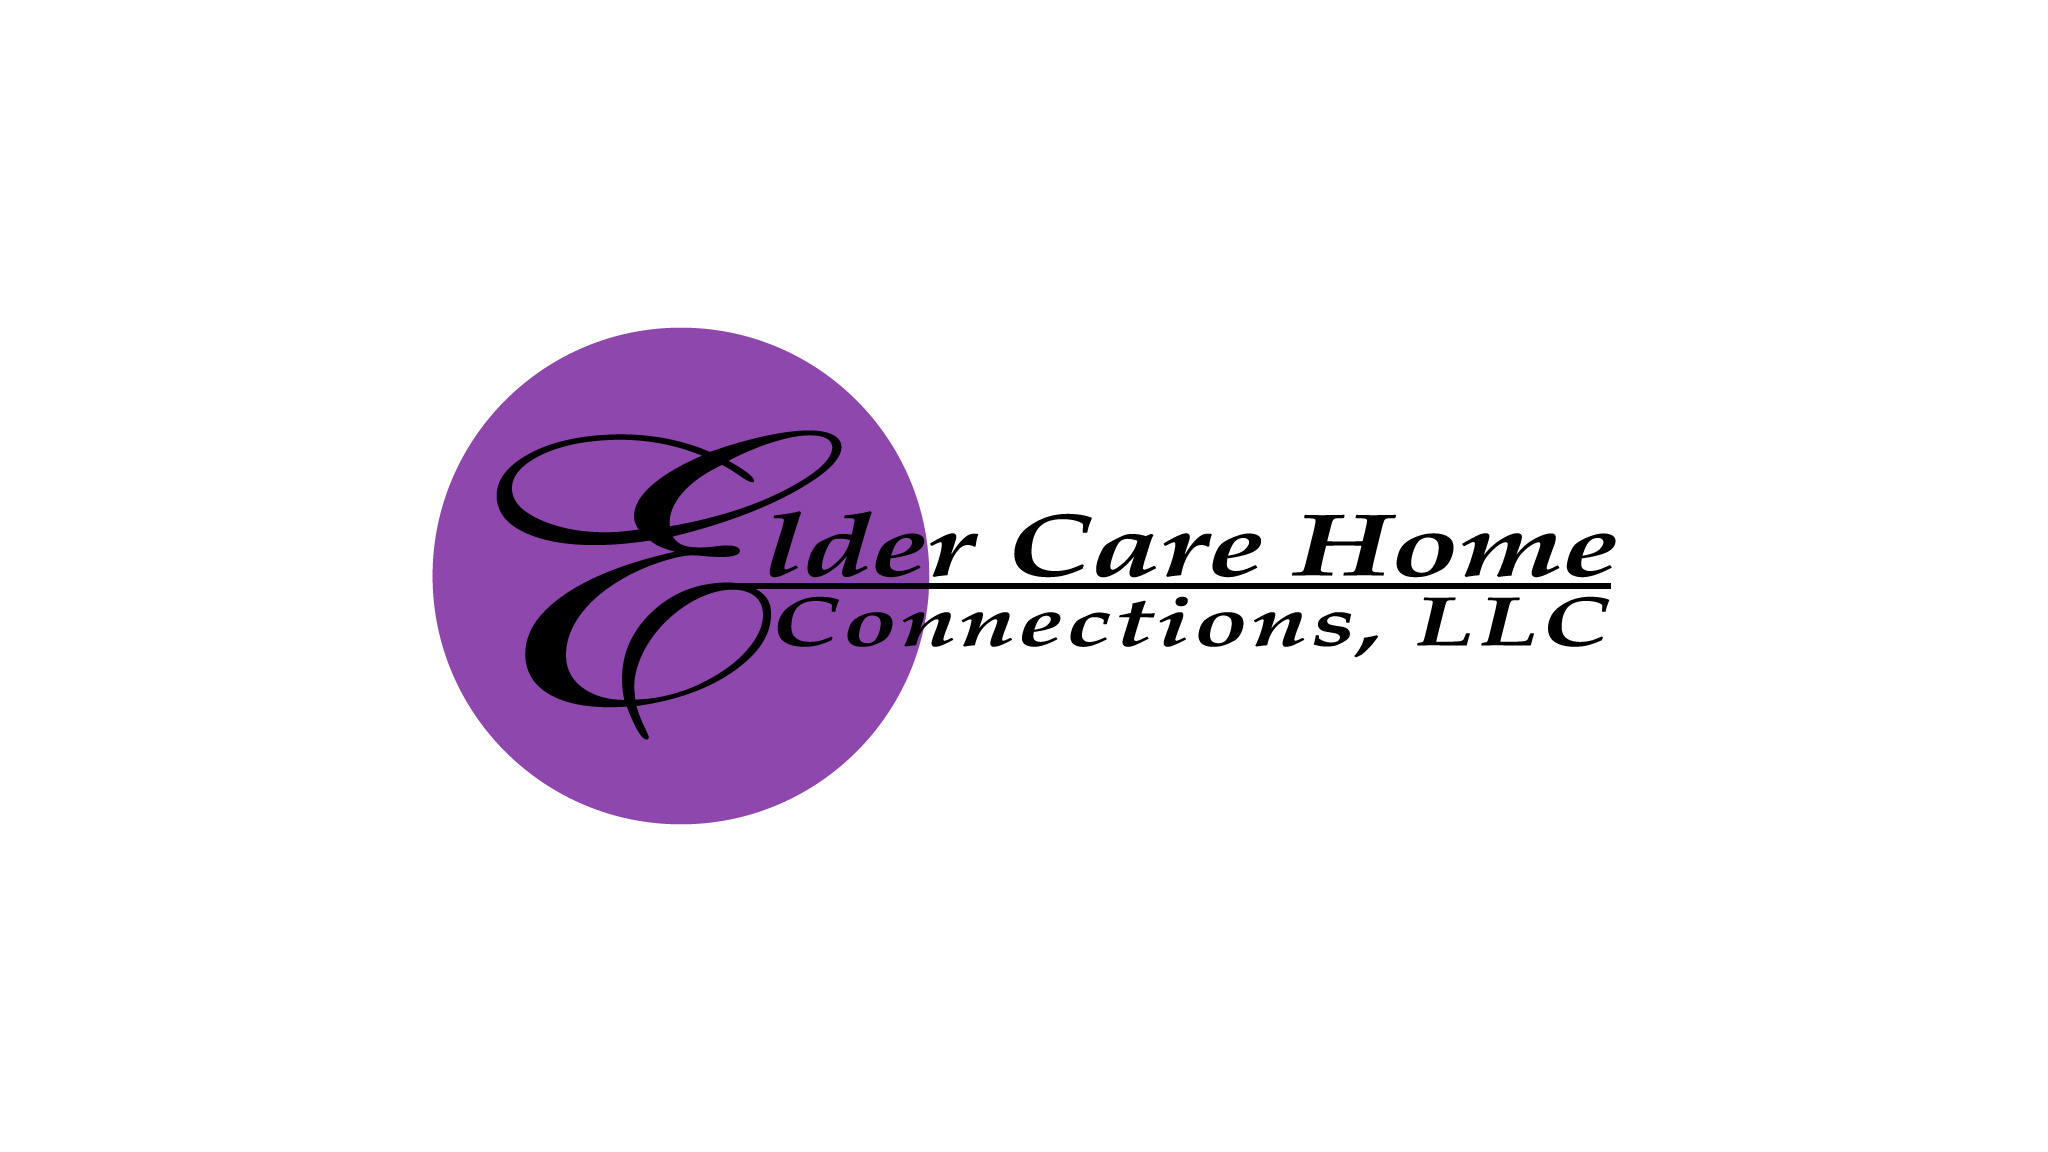 Elder Care Home Connections